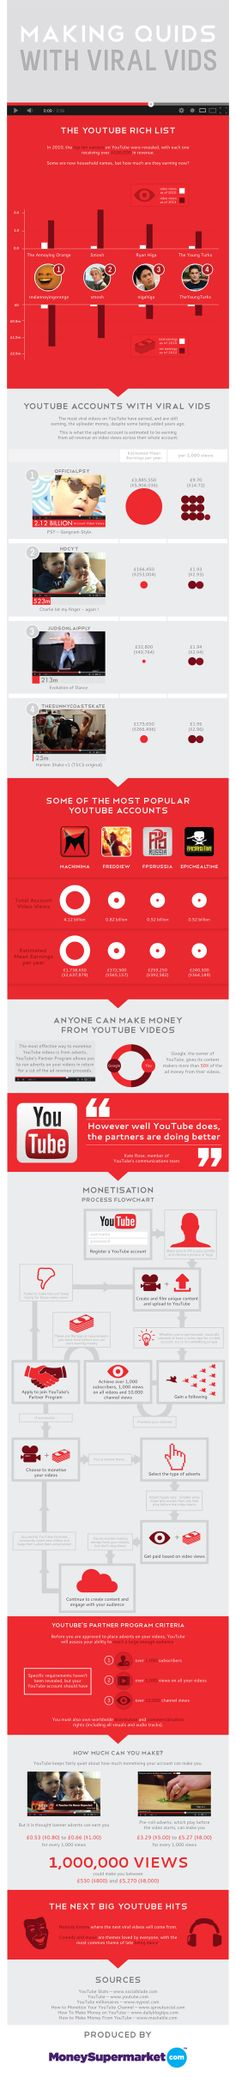 Making Quids with viral vids #youtube #socialnetworking #socialmedia